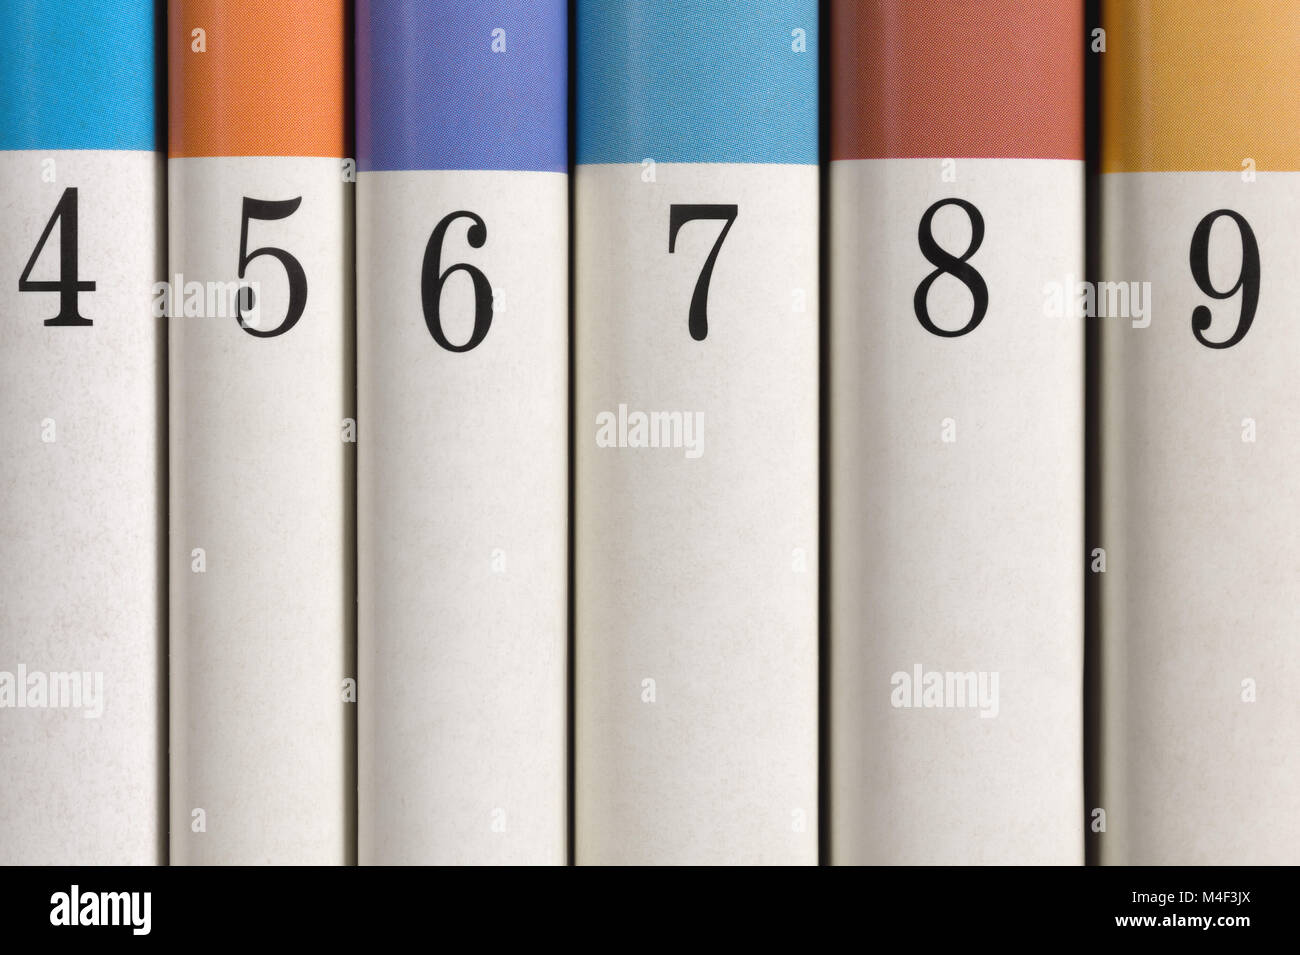 Six colored numbered books in a row - Stock Image